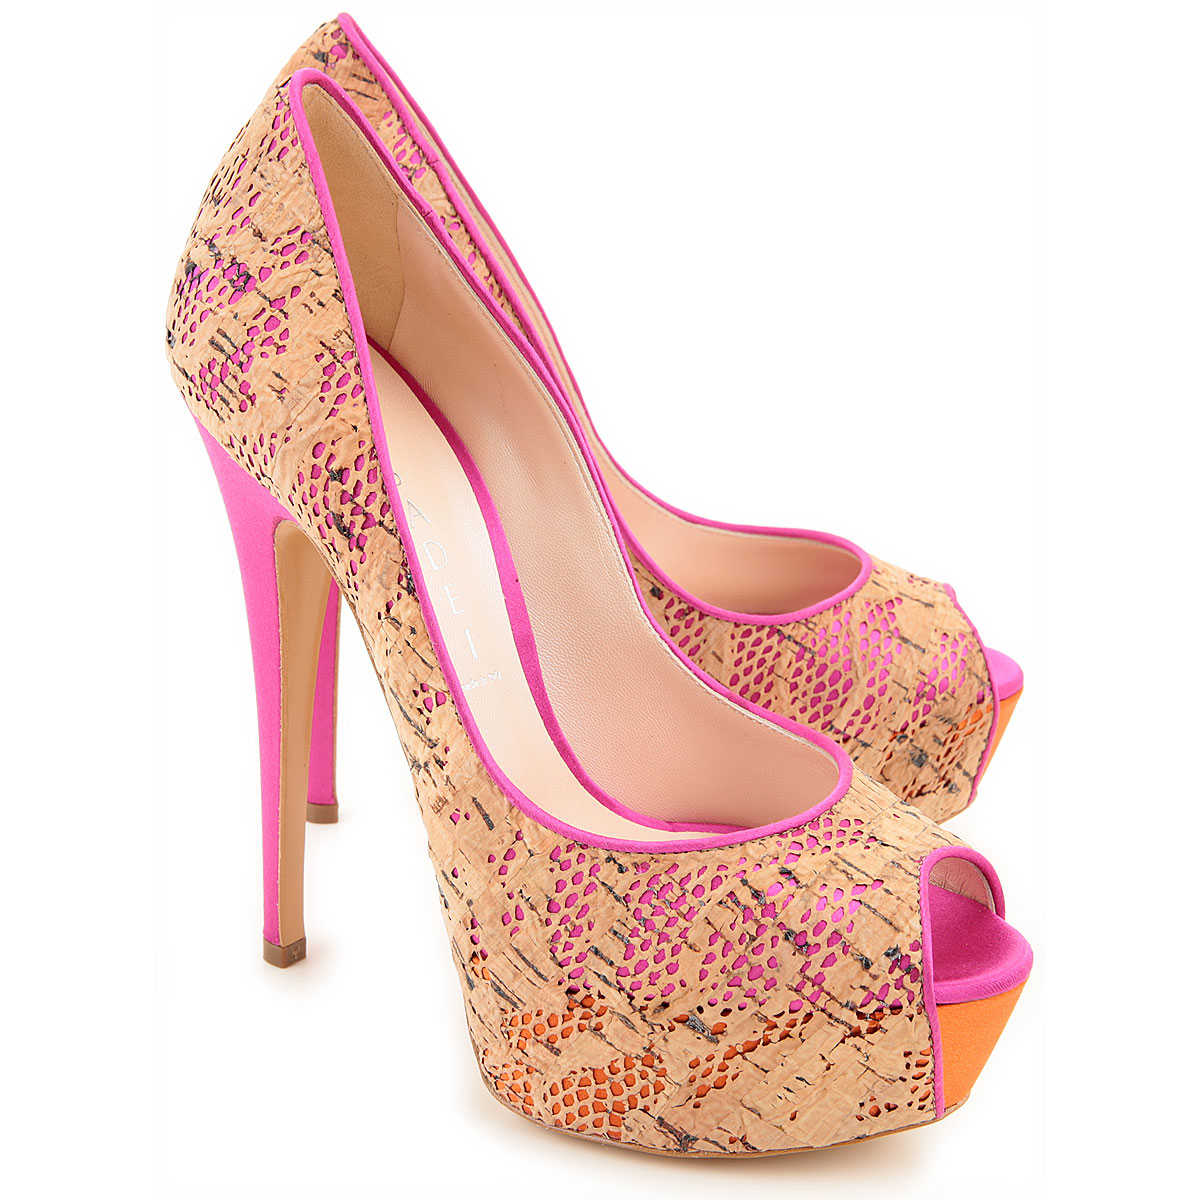 Casadei Pumps & High Heels for Women in Outlet Raspberry USA - GOOFASH